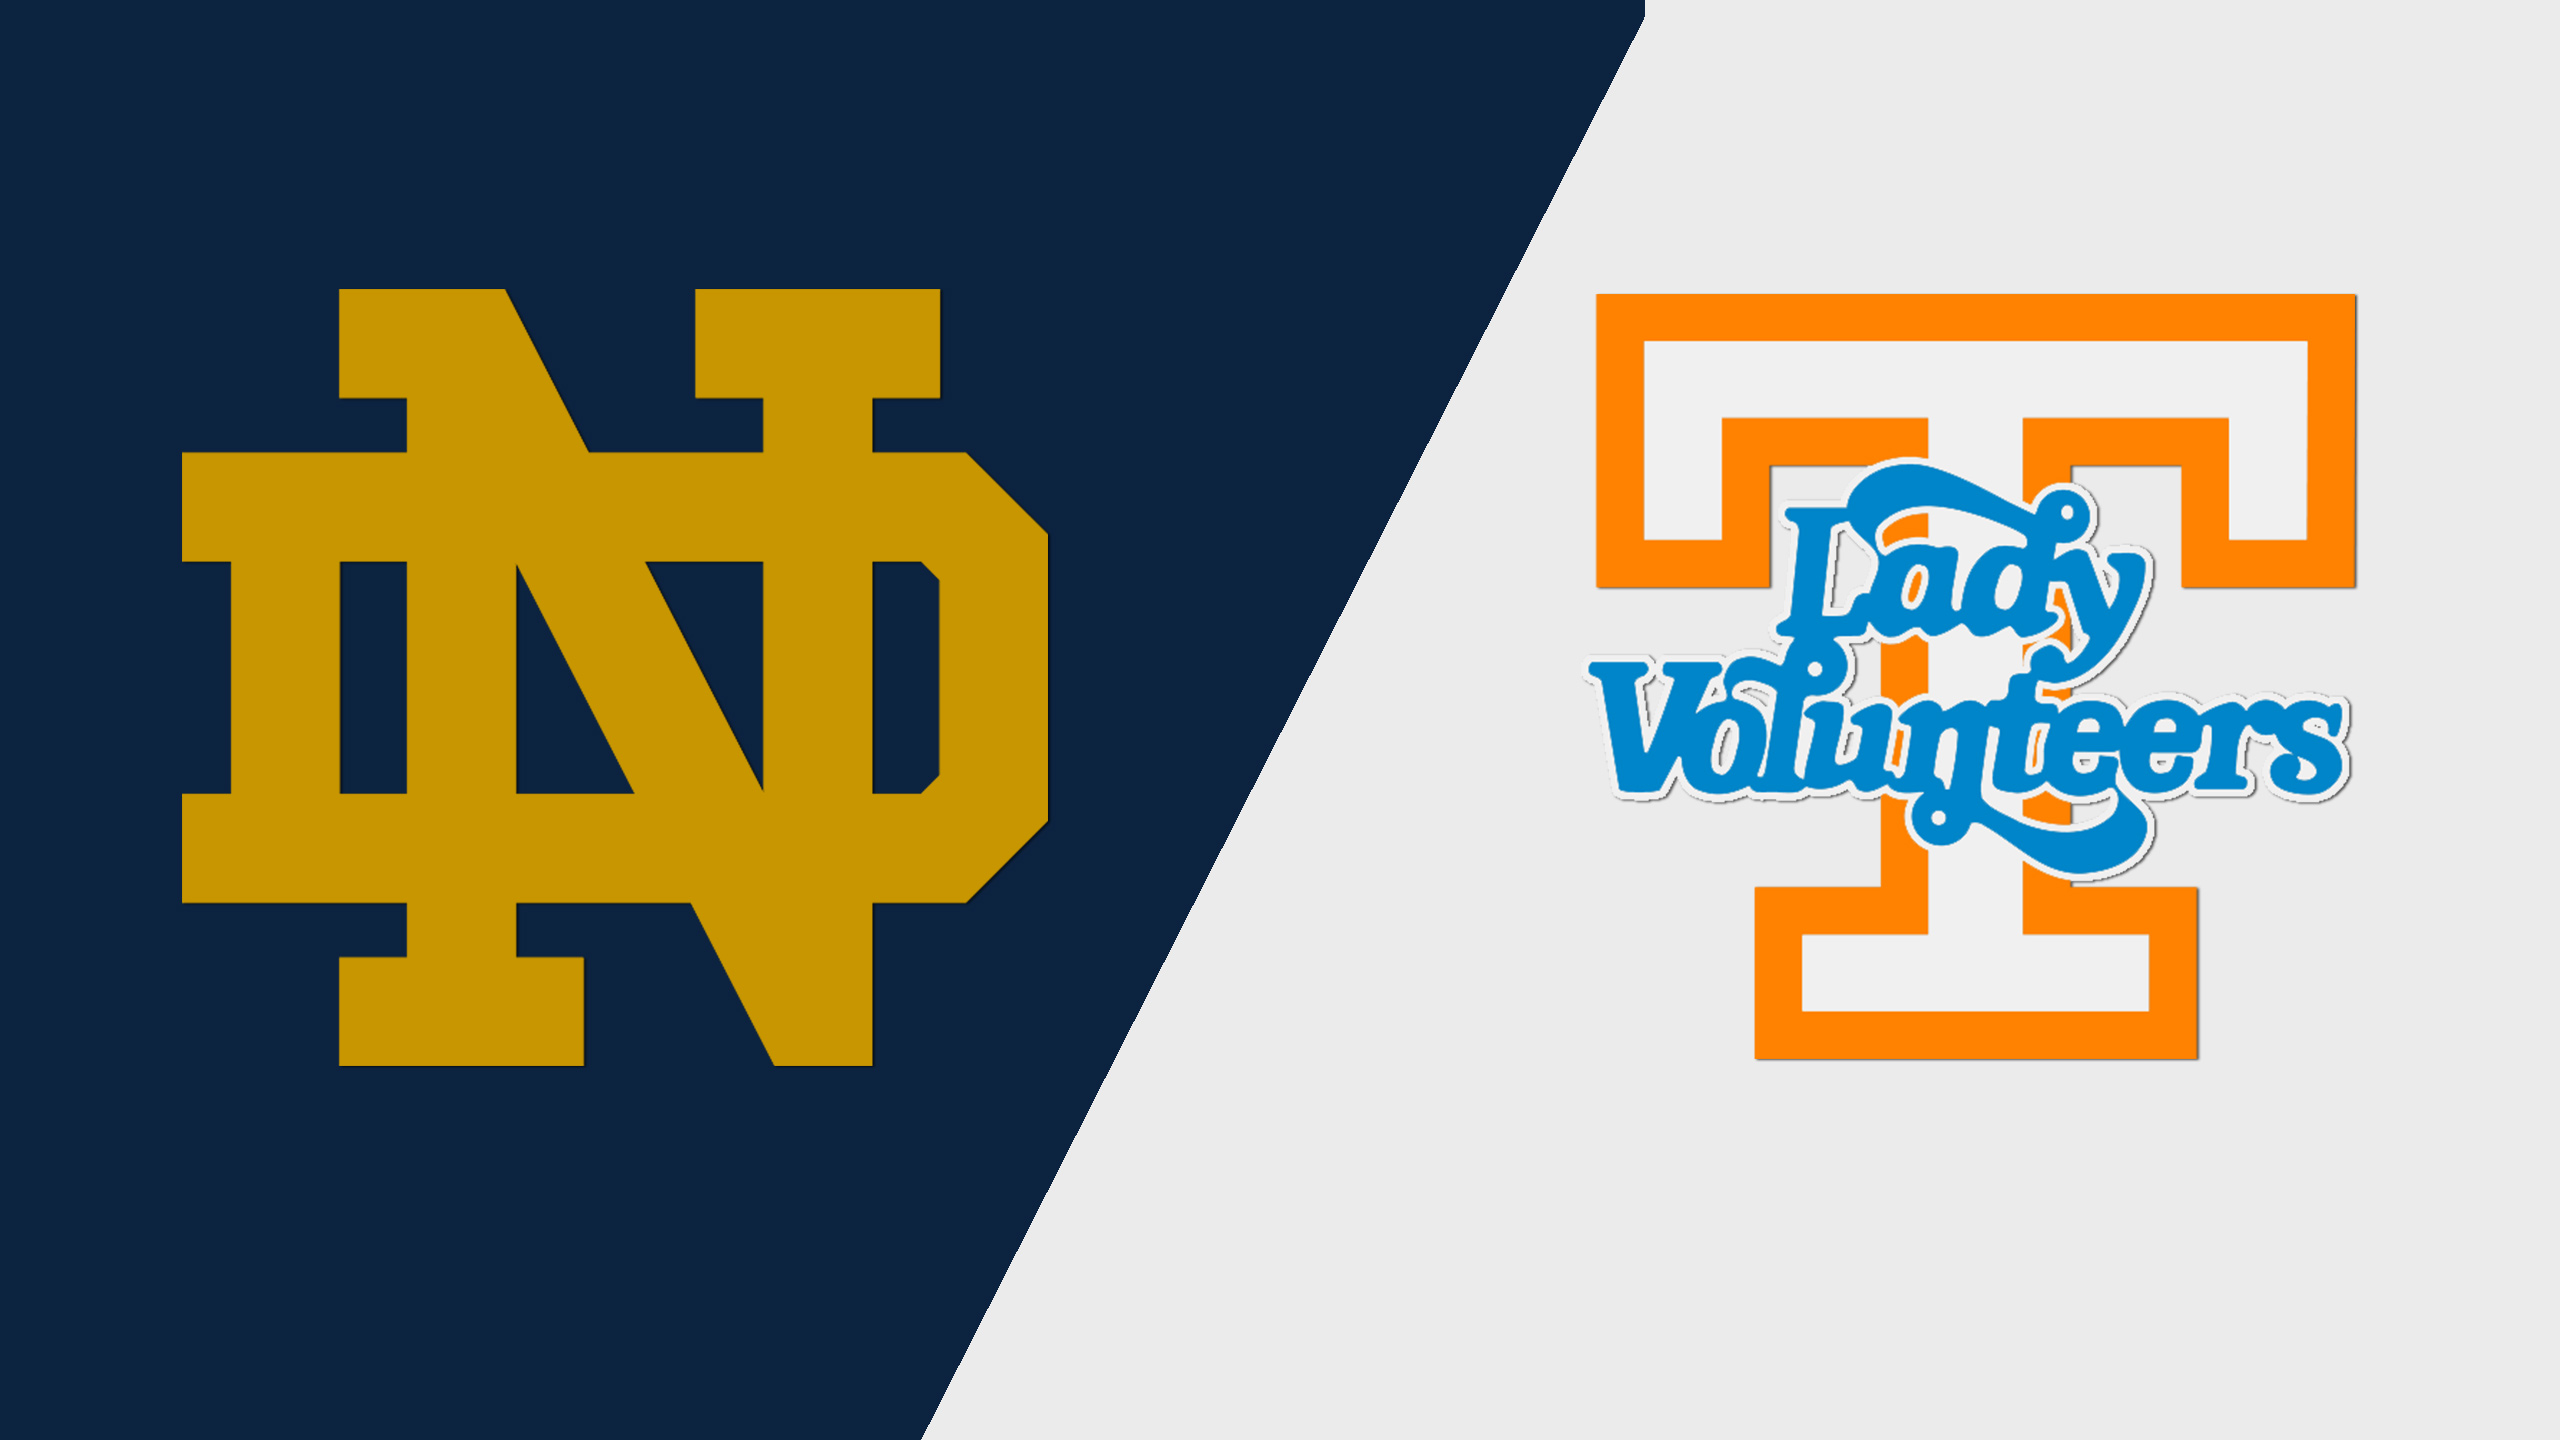 #1 Notre Dame vs. #20 Tennessee (re-air)